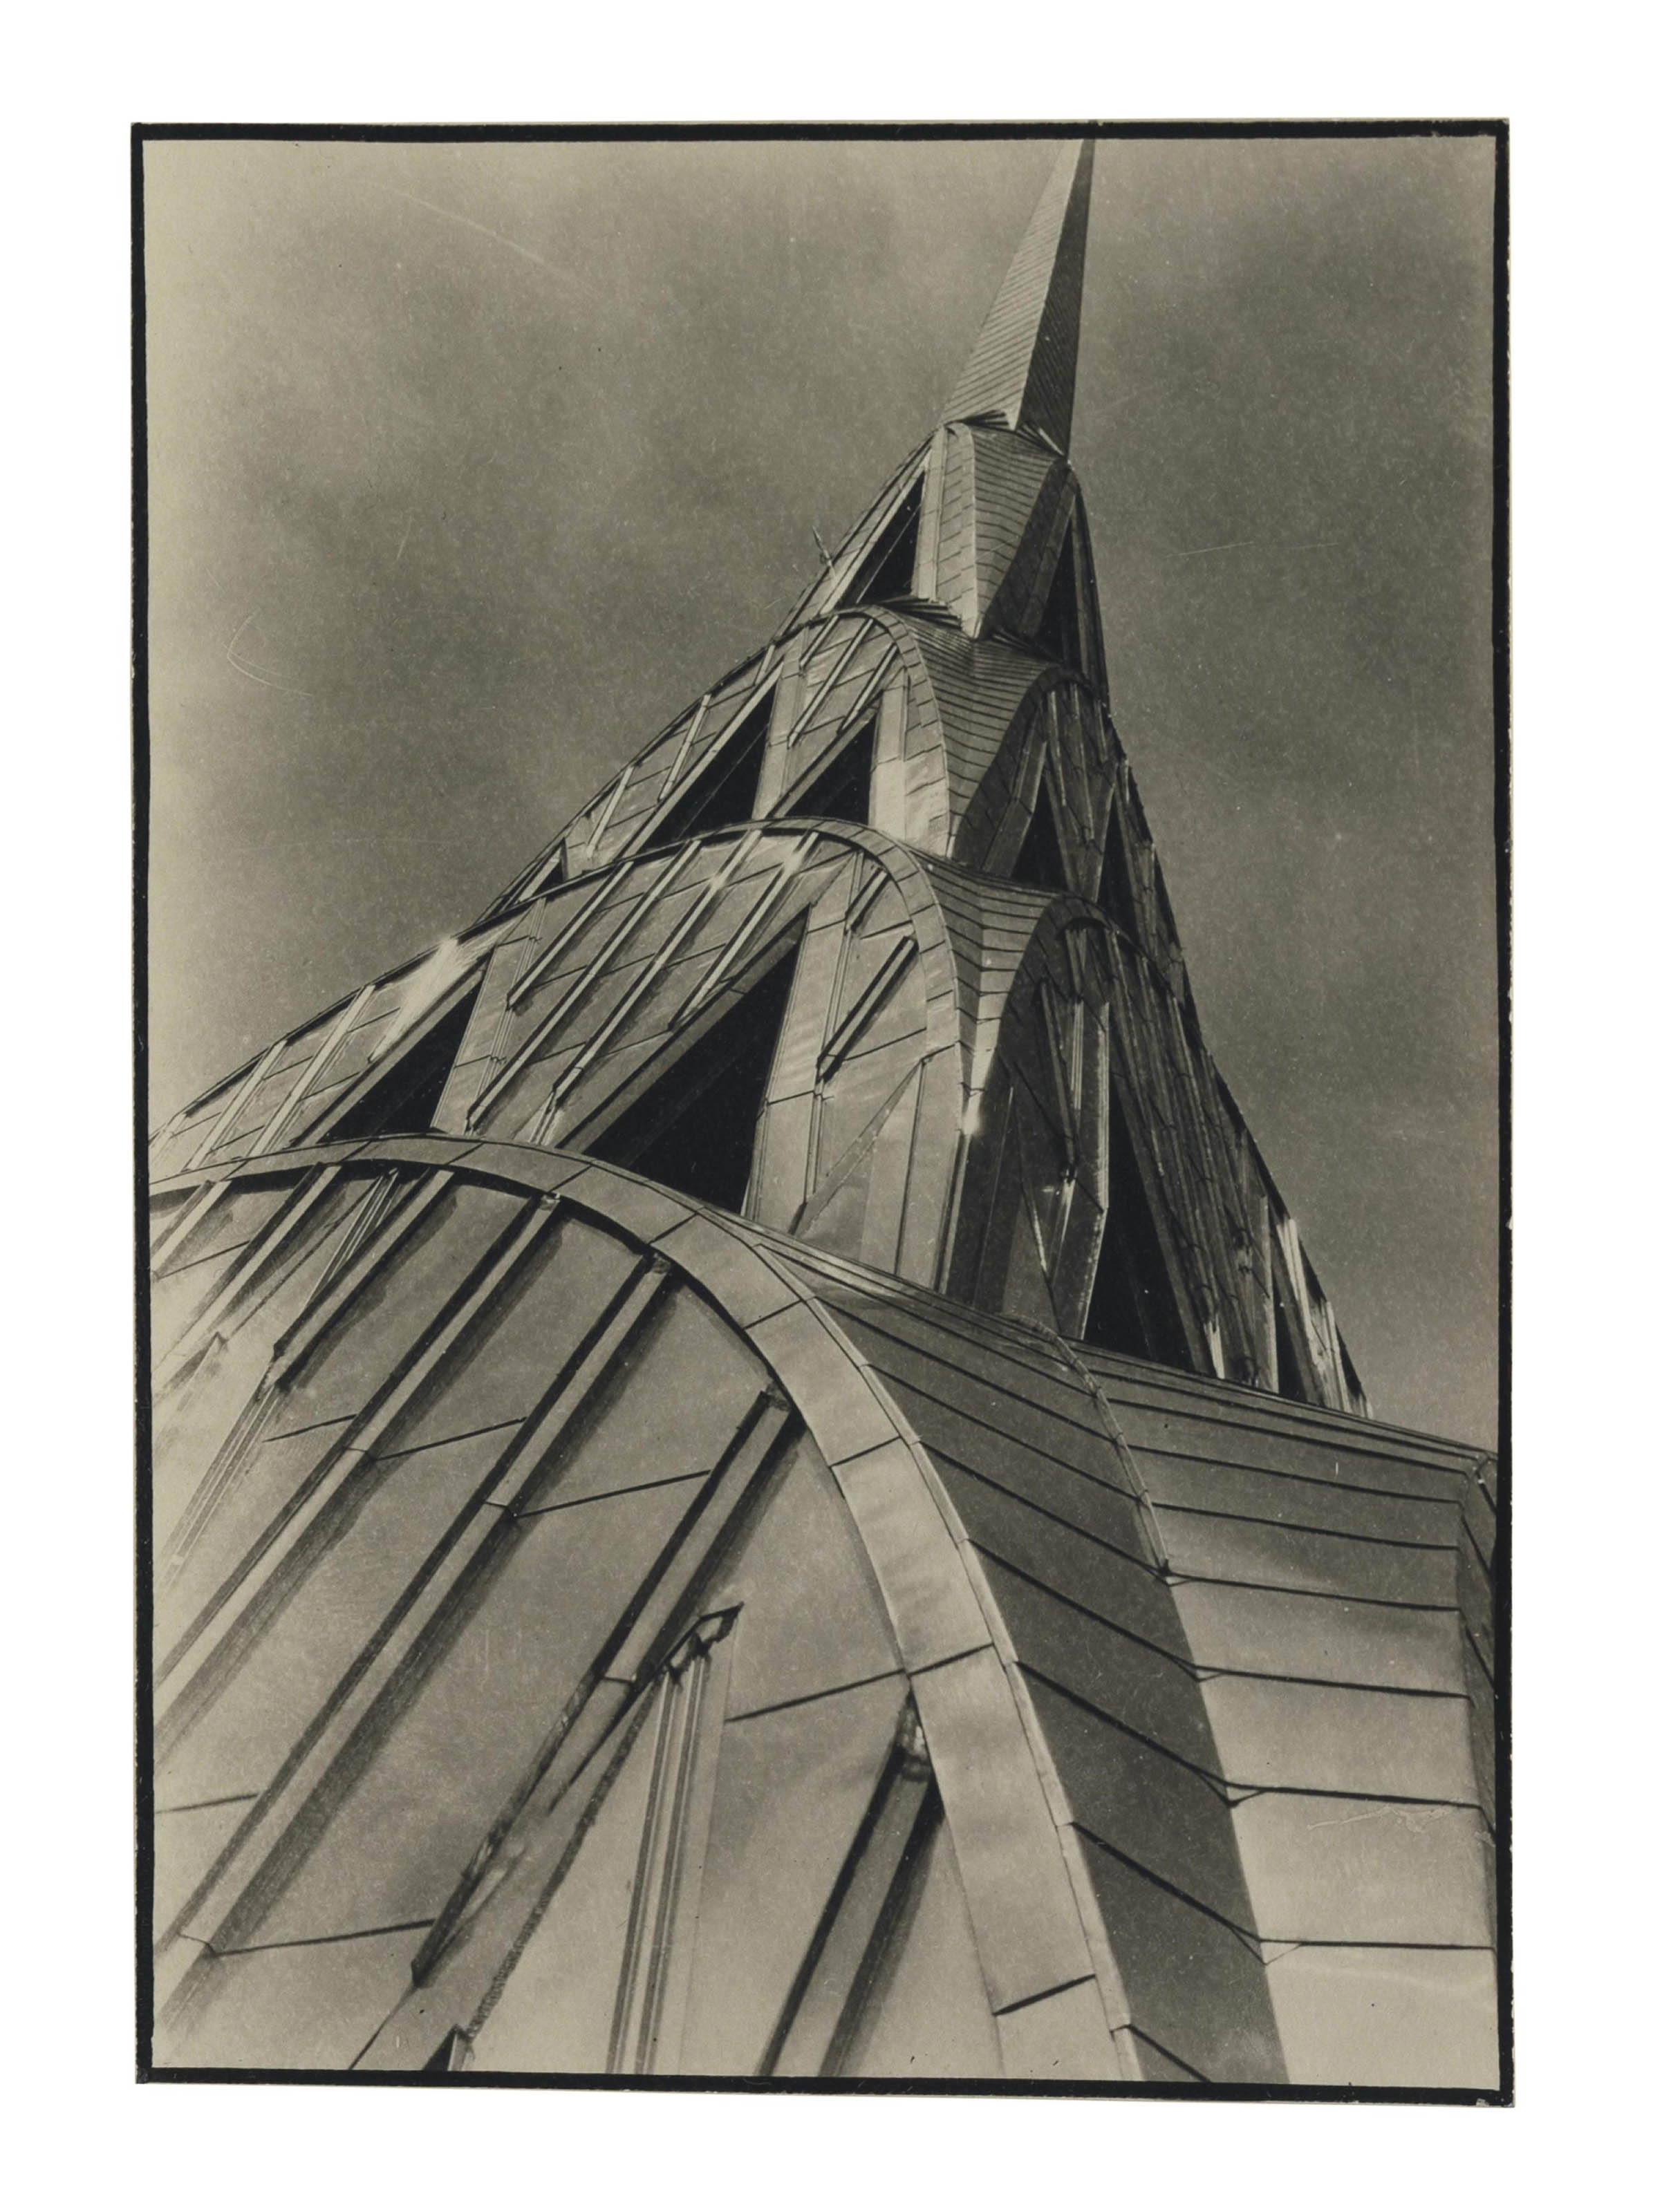 Chrysler Building, New York, exhibition announcement, 1930